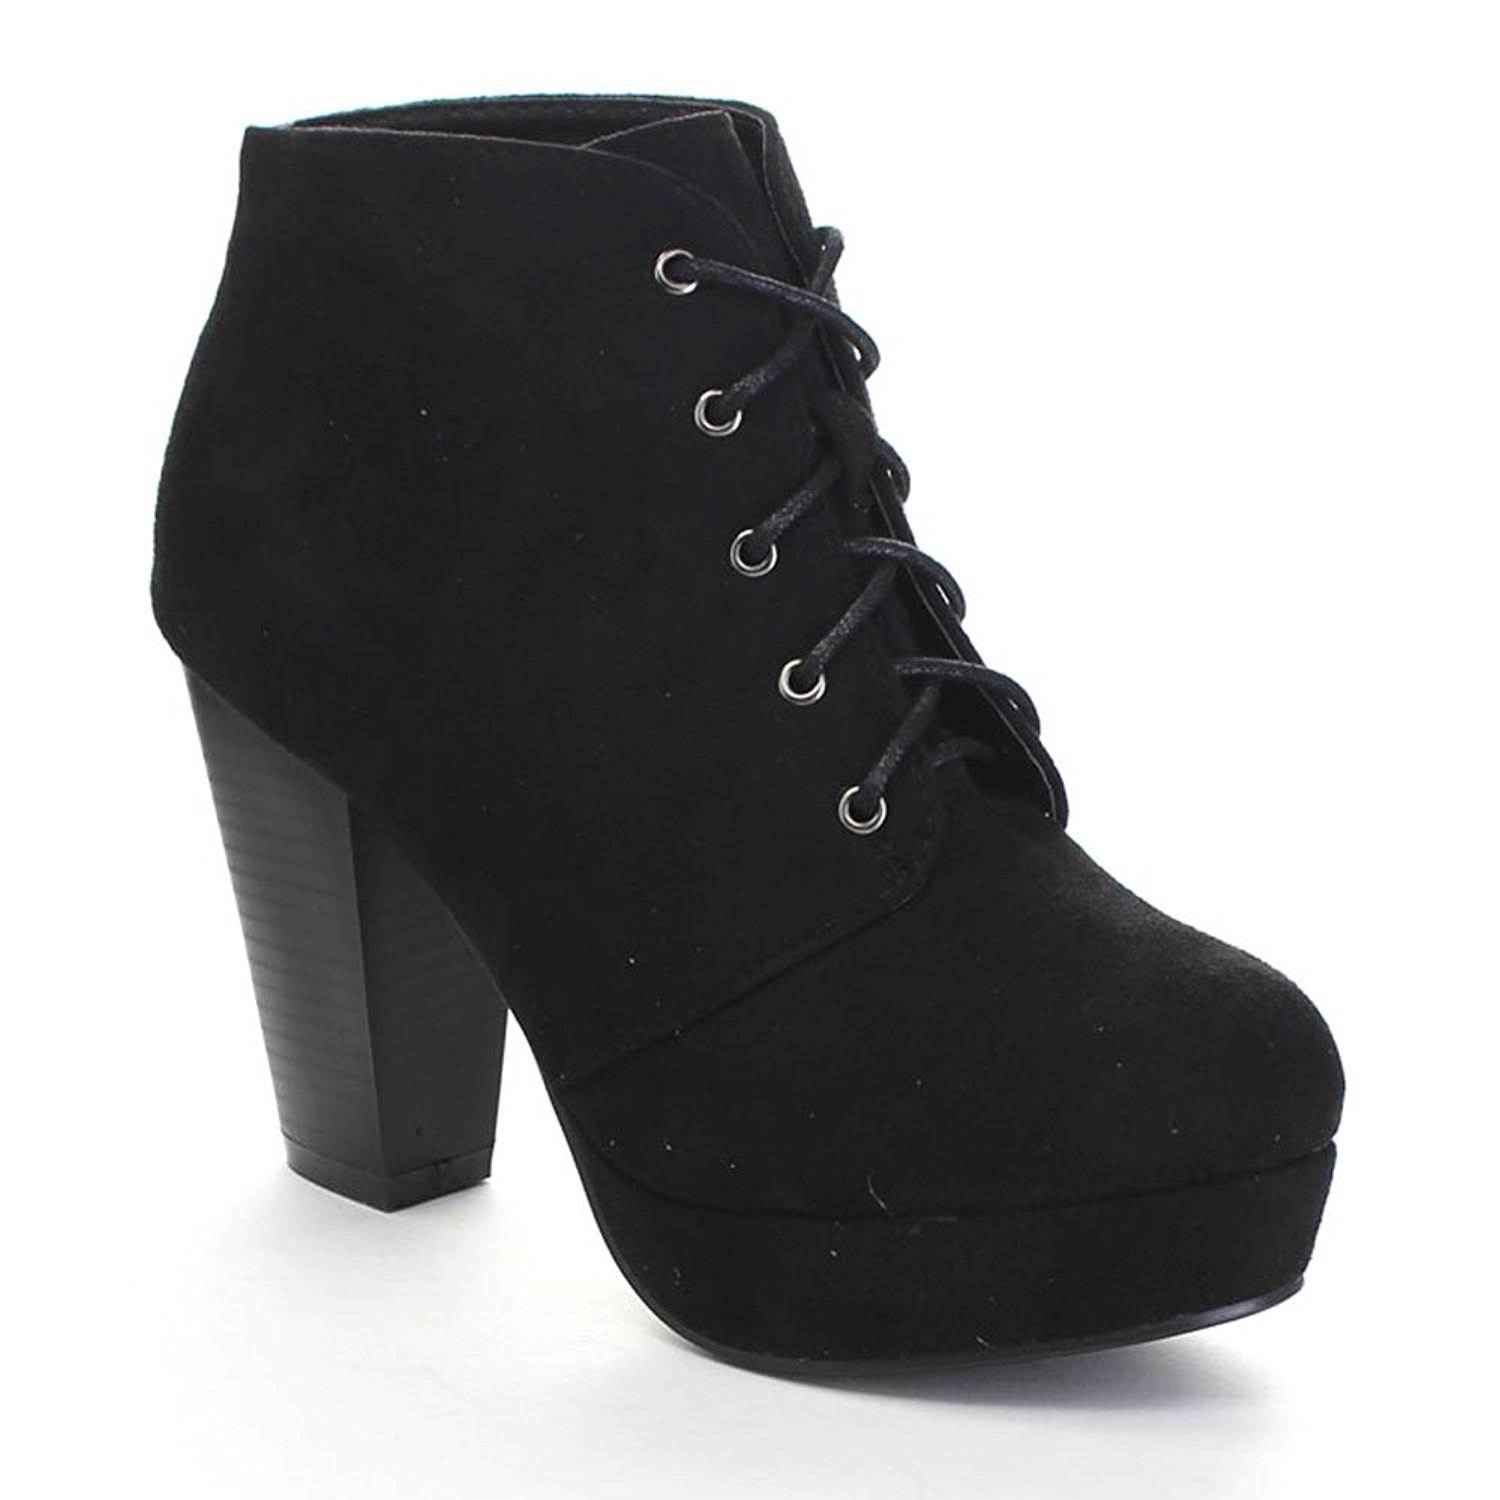 37d5a33f58 A pair of boots with four-inch heels that feel way less high thanks to the  platform.